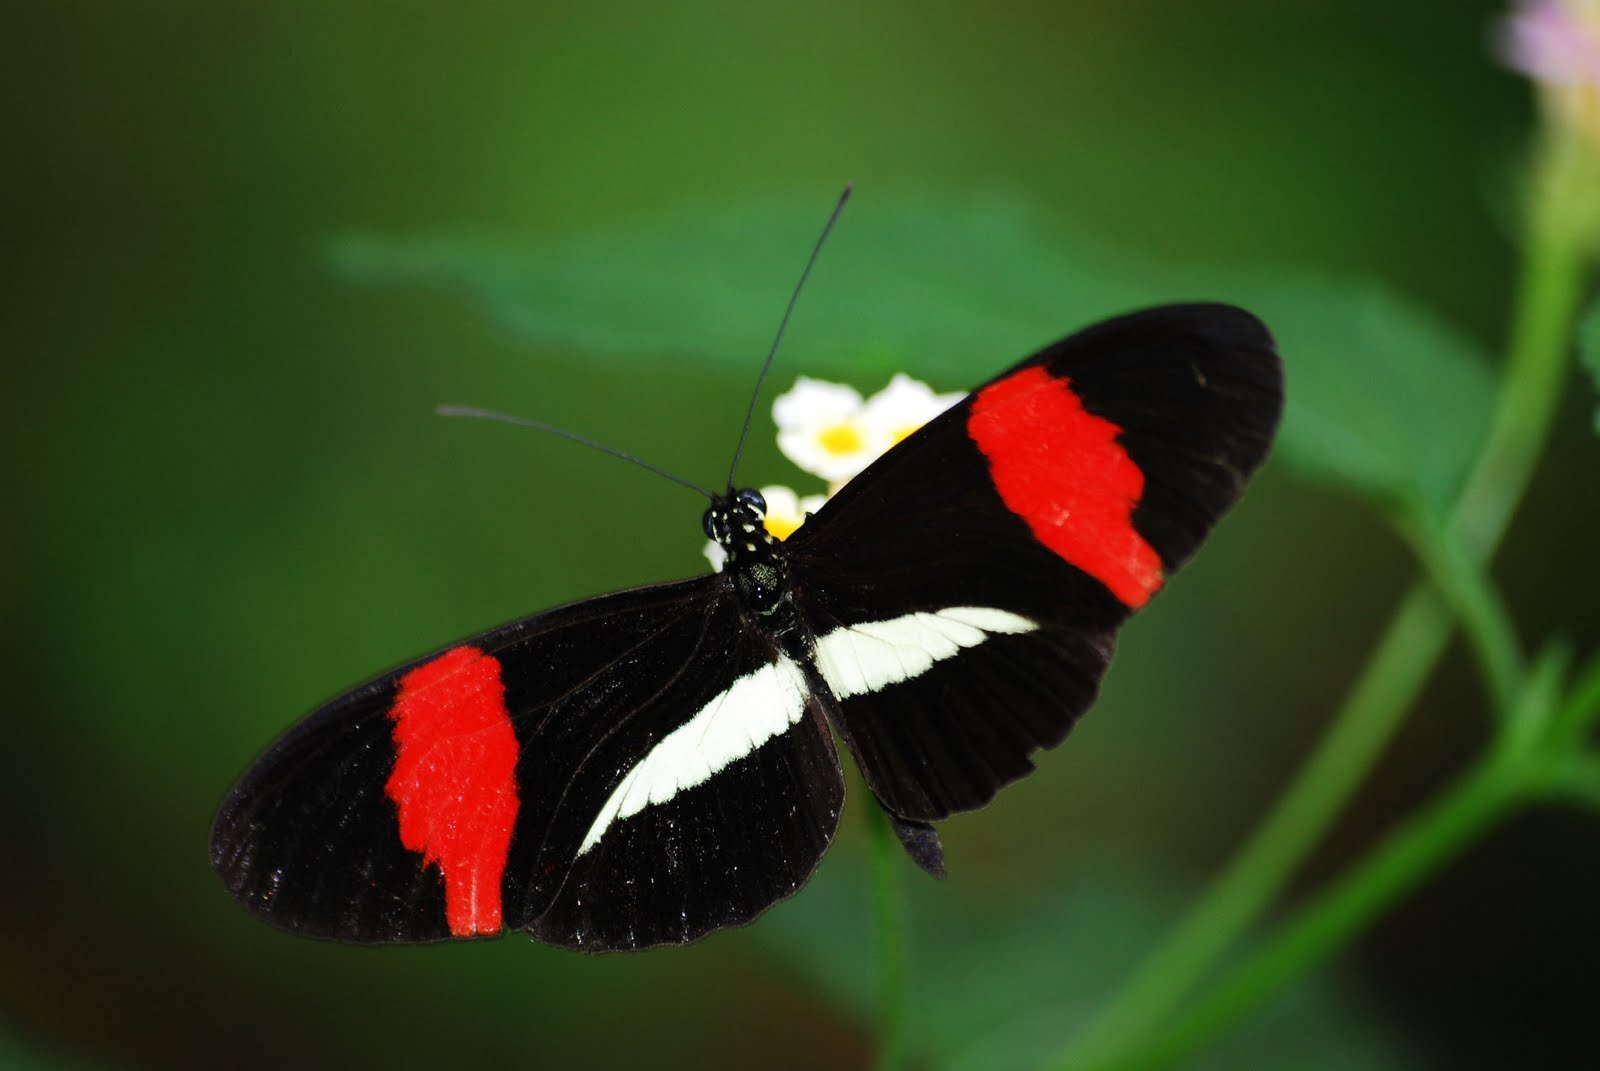 Butterfly Wallpapers HQ, Heliconius Butterfly Wallpapers, Beautiful Heliconius Butterfly Picyutres, New Butterfly Wallpapers, Butterfly Wallpapers